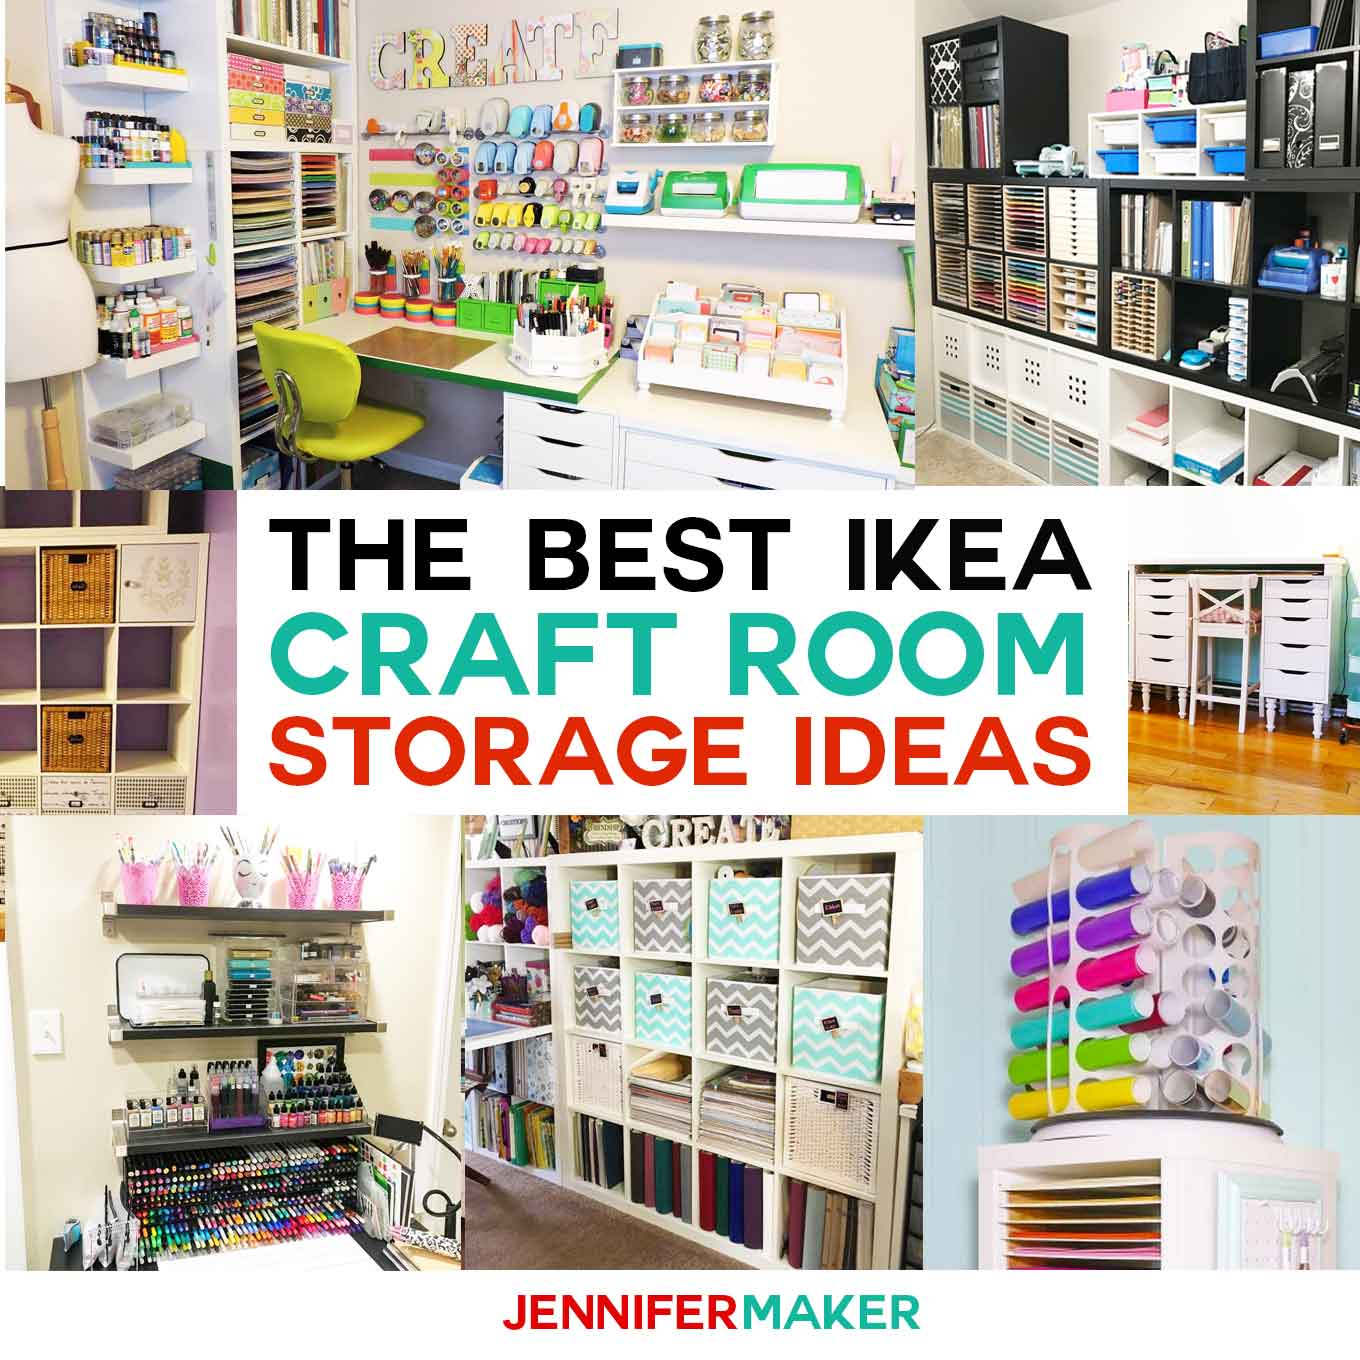 35 Home Storage Ideas Room By Room: The Best IKEA Craft Room Storage Shelves & Ideas